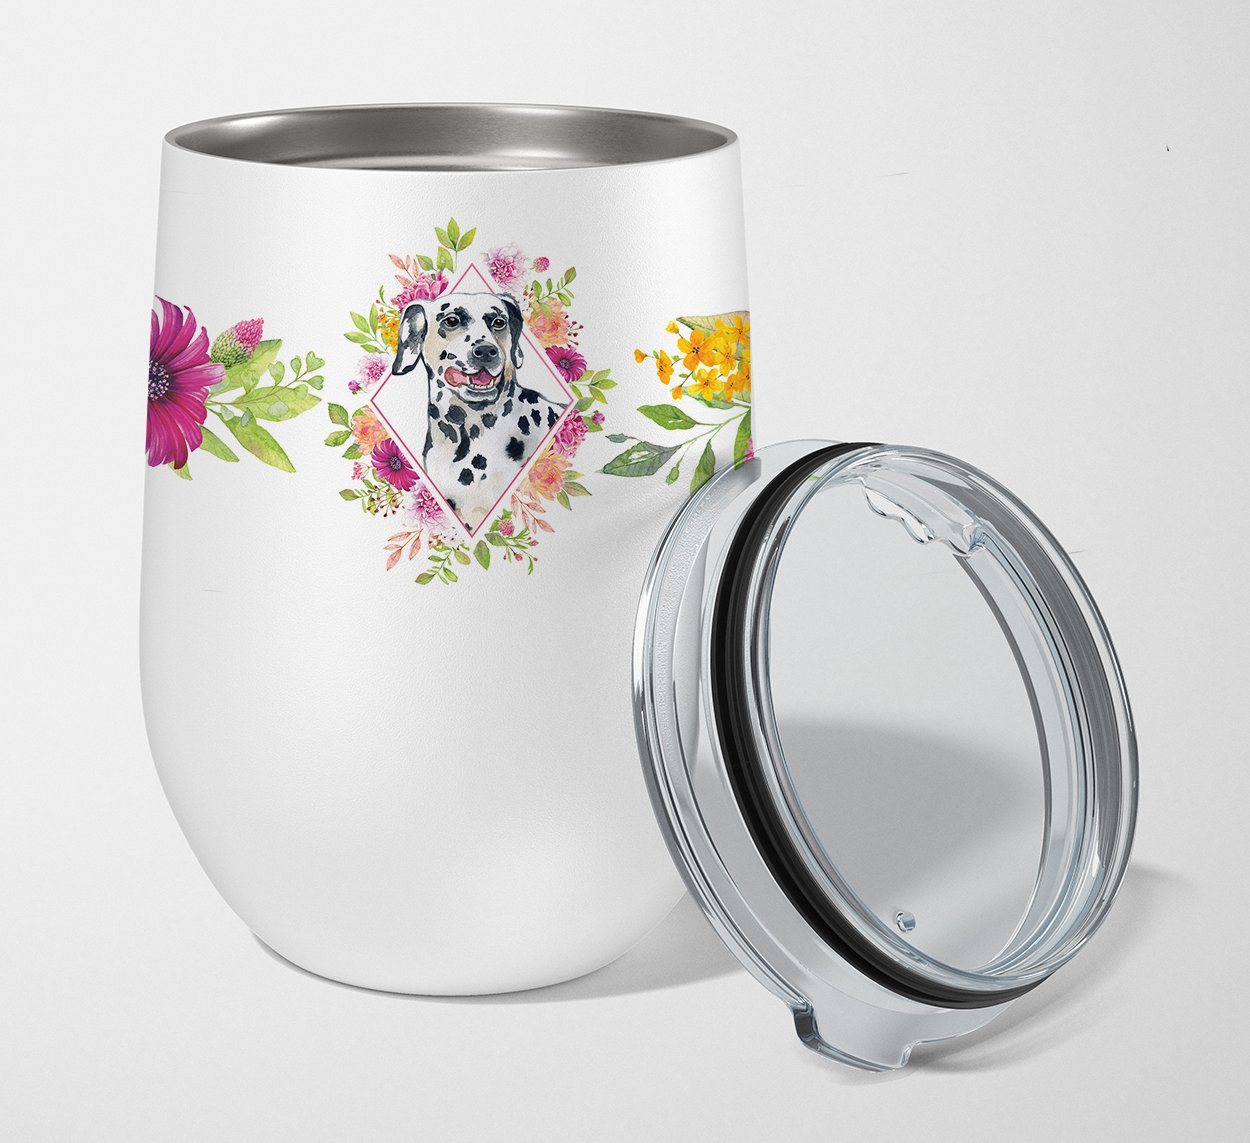 Dalmatian Pink Flowers Stainless Steel 12 oz Stemless Wine Glass CK4137TBL12 by Caroline's Treasures